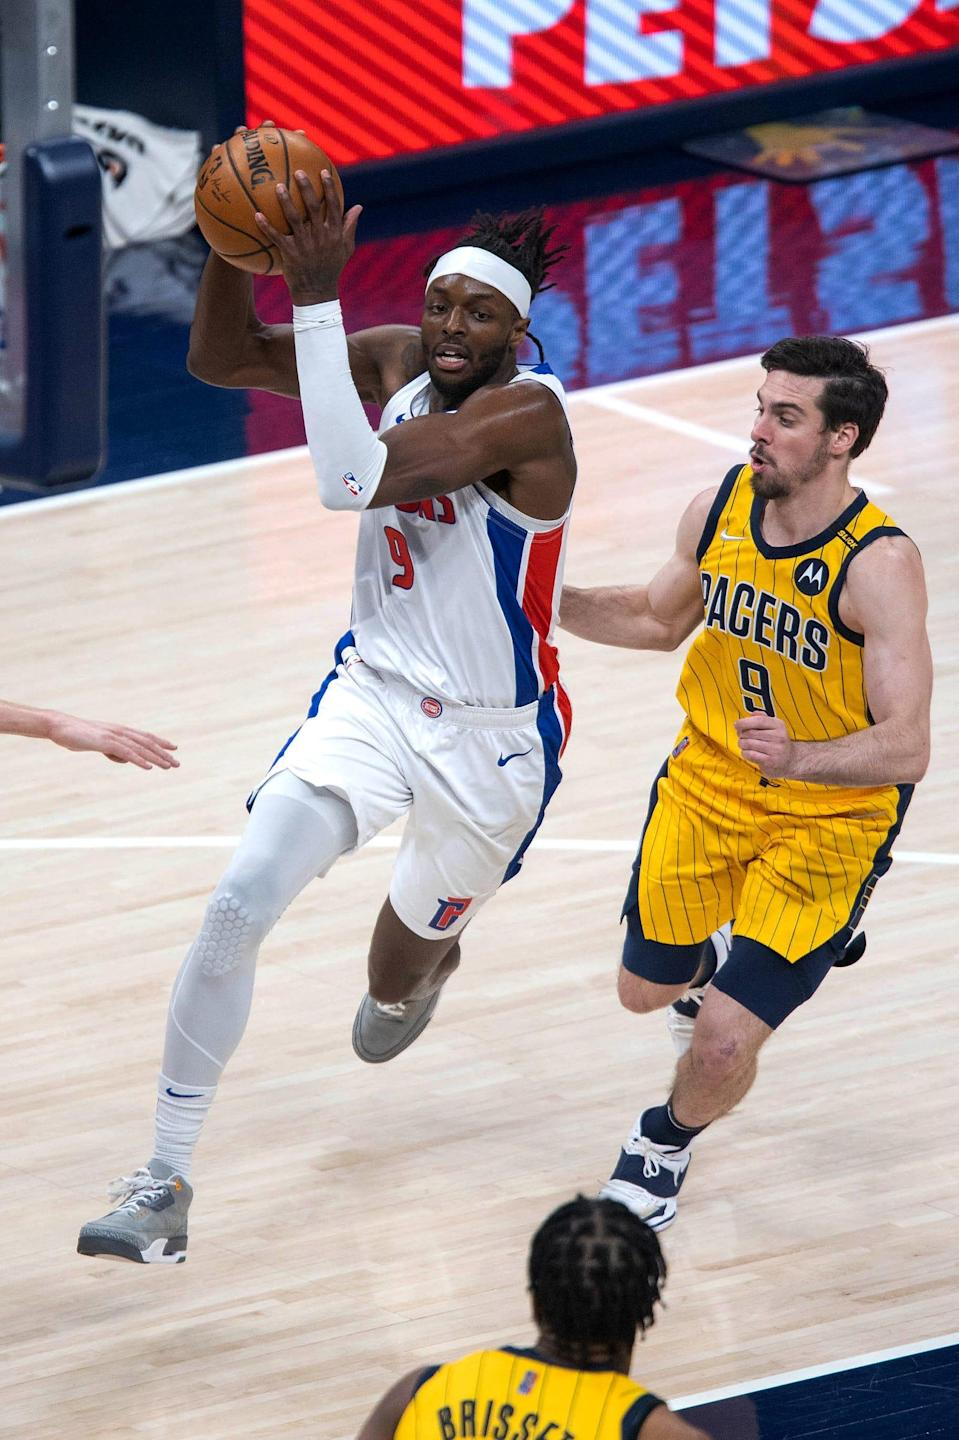 Pistons forward Jerami Grant dribbles the ball against Pacers guard T.J. McConnell in the third quarter on Saturday, April 24, 2021, in Indianapolis.